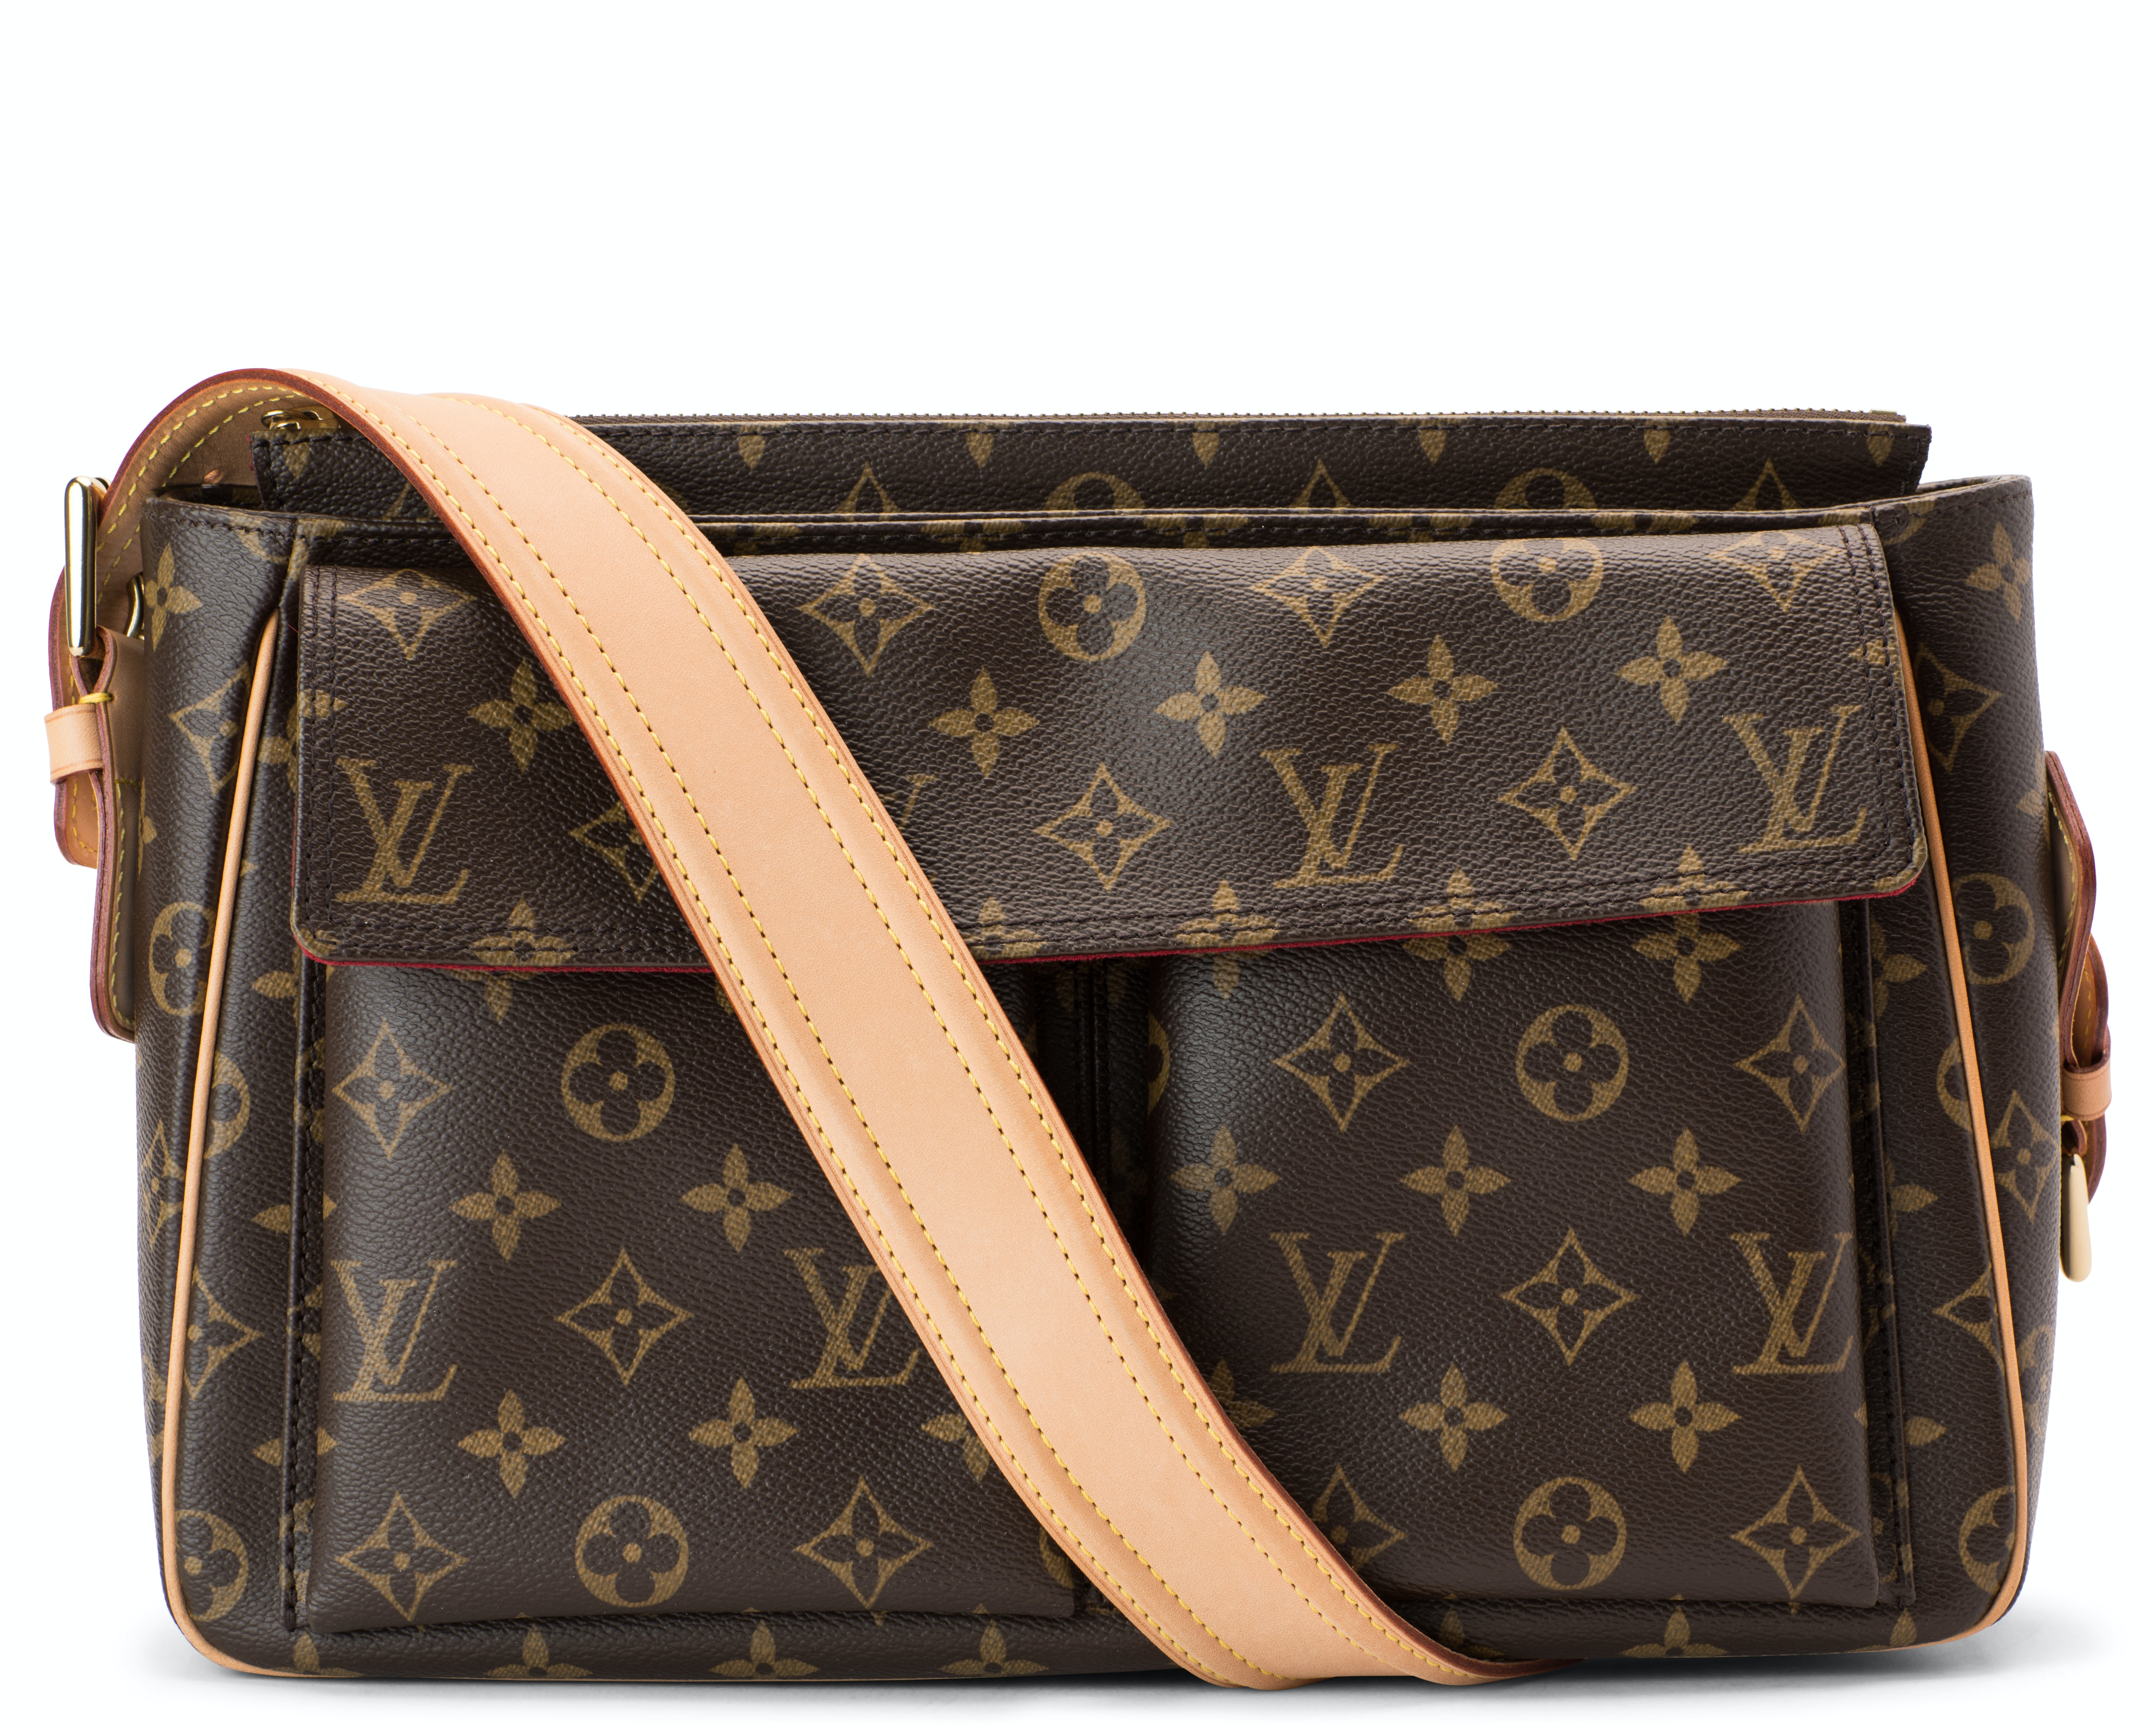 Louis Vuitton Viva Cite Monogram GM Brown